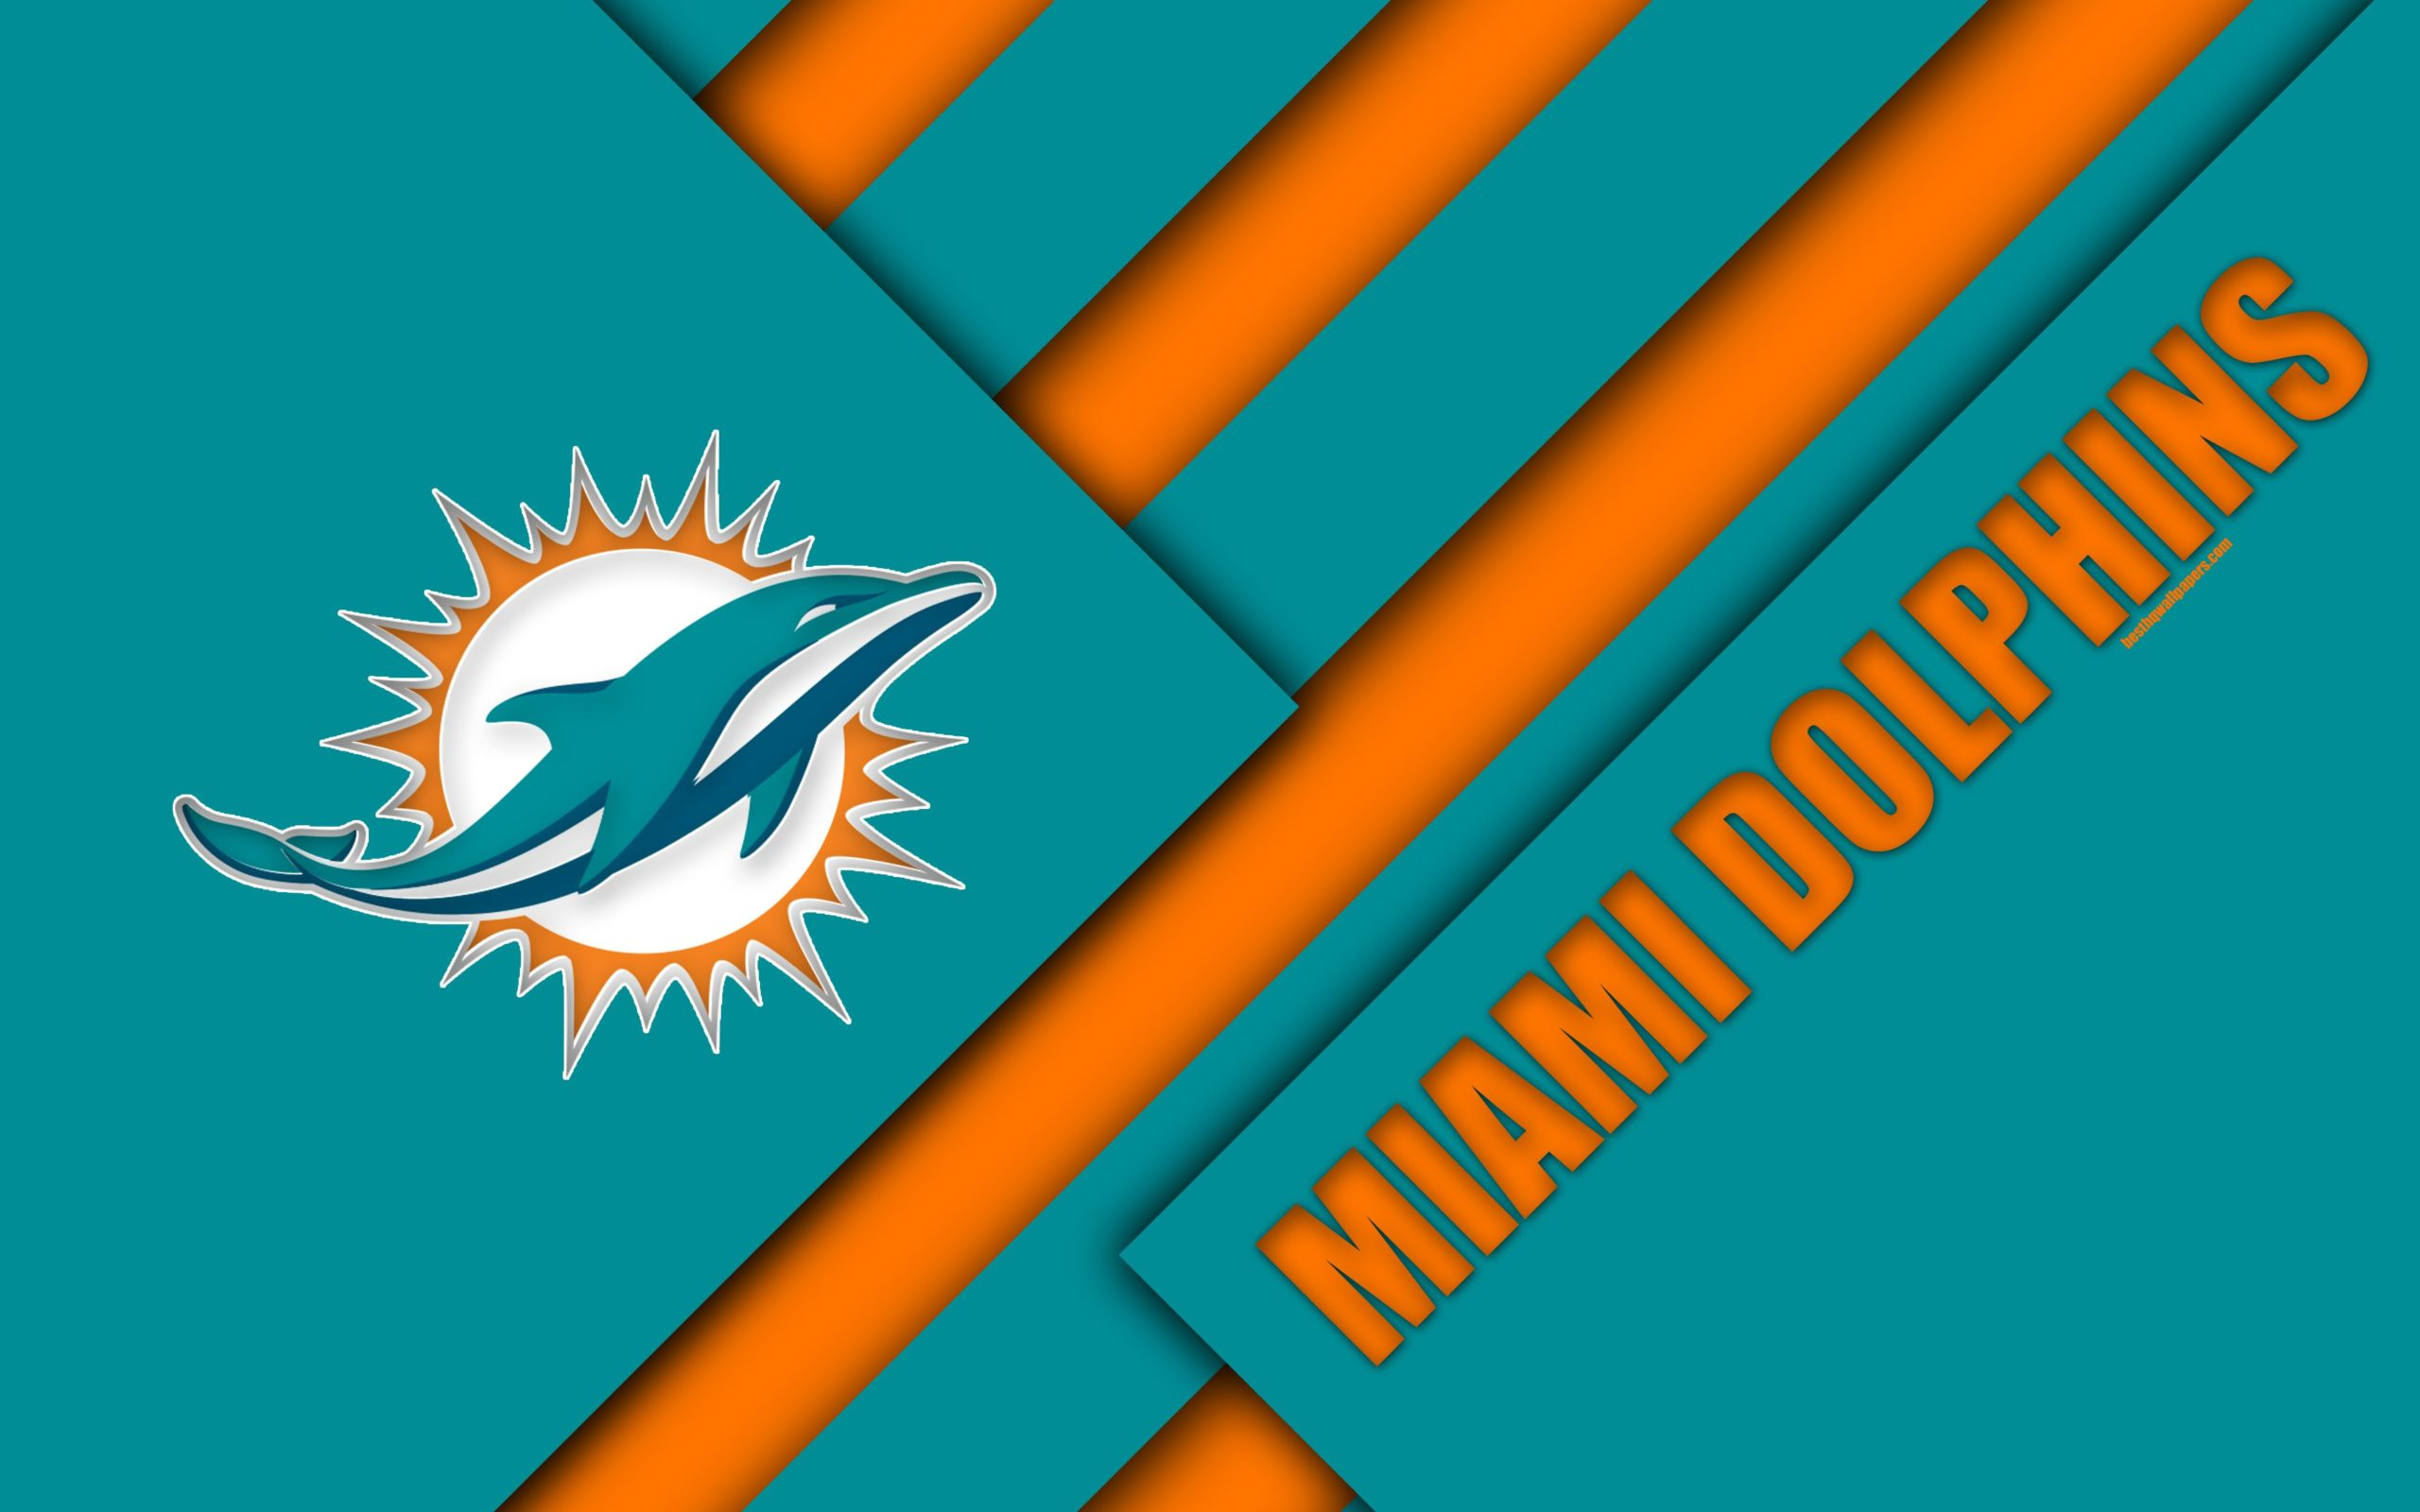 miami dolphins screen background